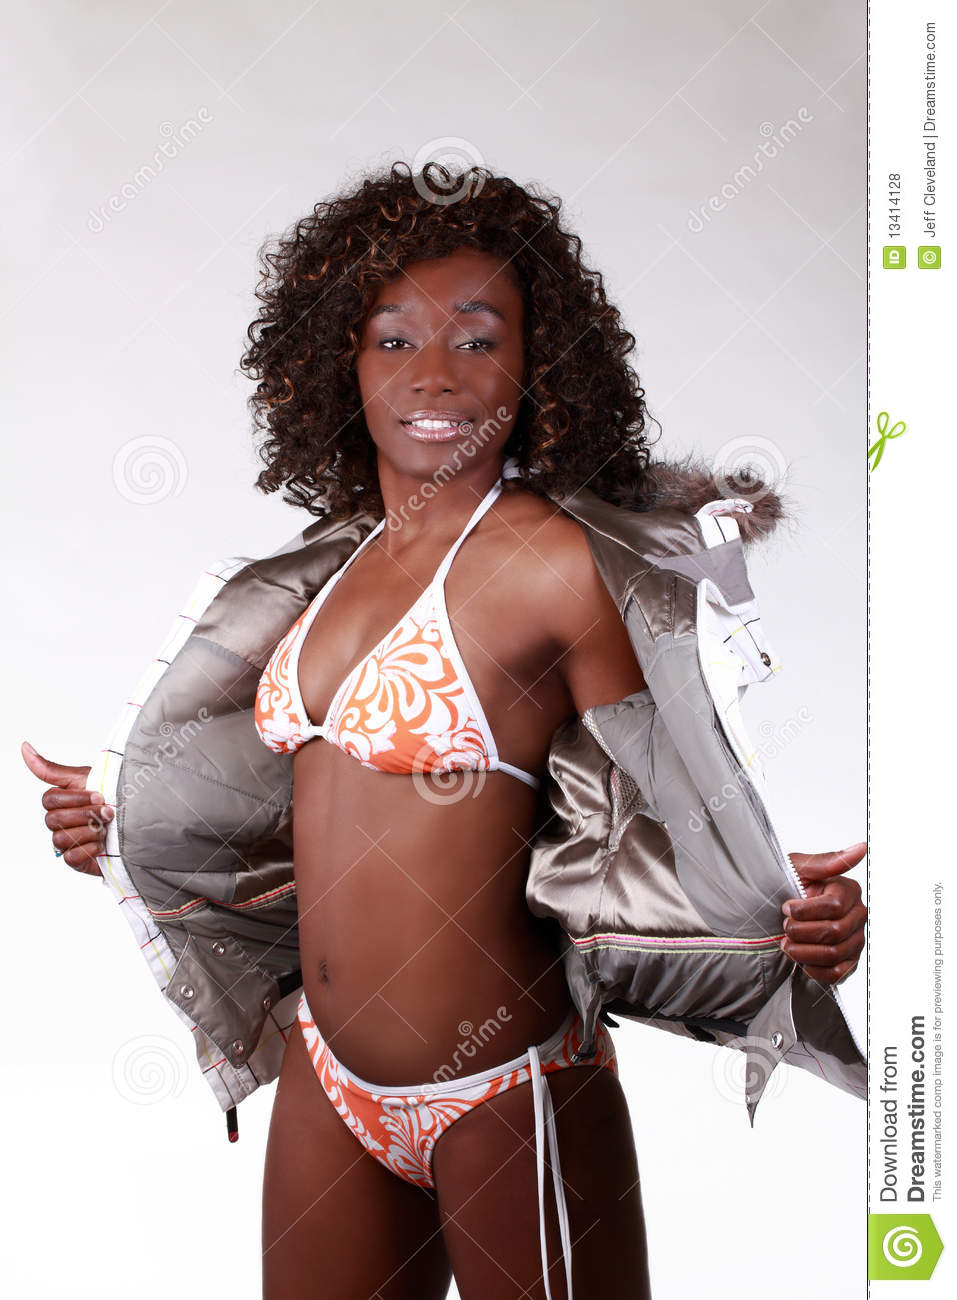 African American Woman in Bikini and Jacket